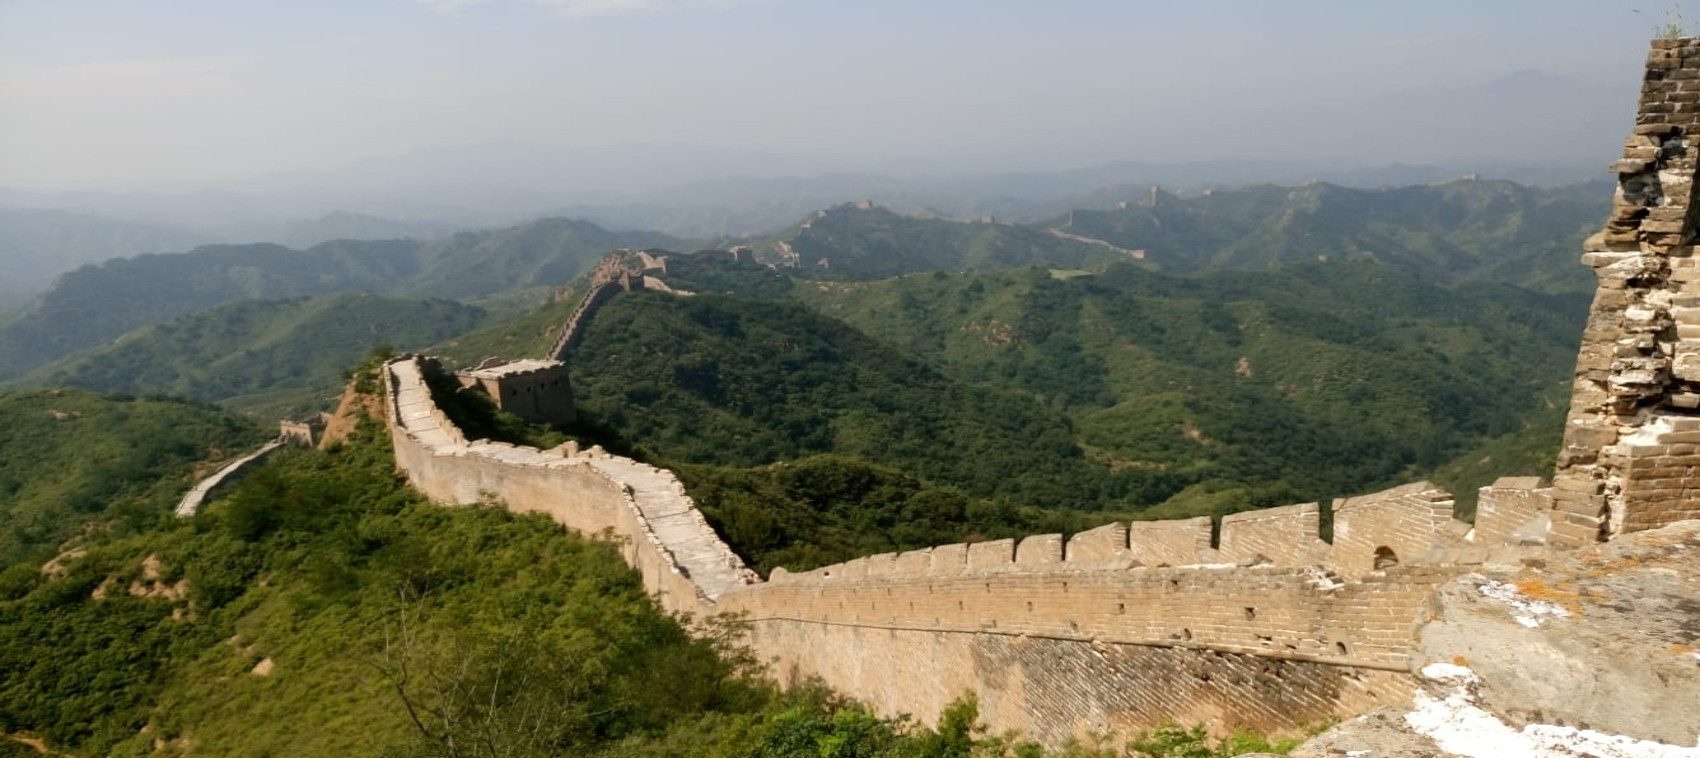 Great Wall Of China - 2022